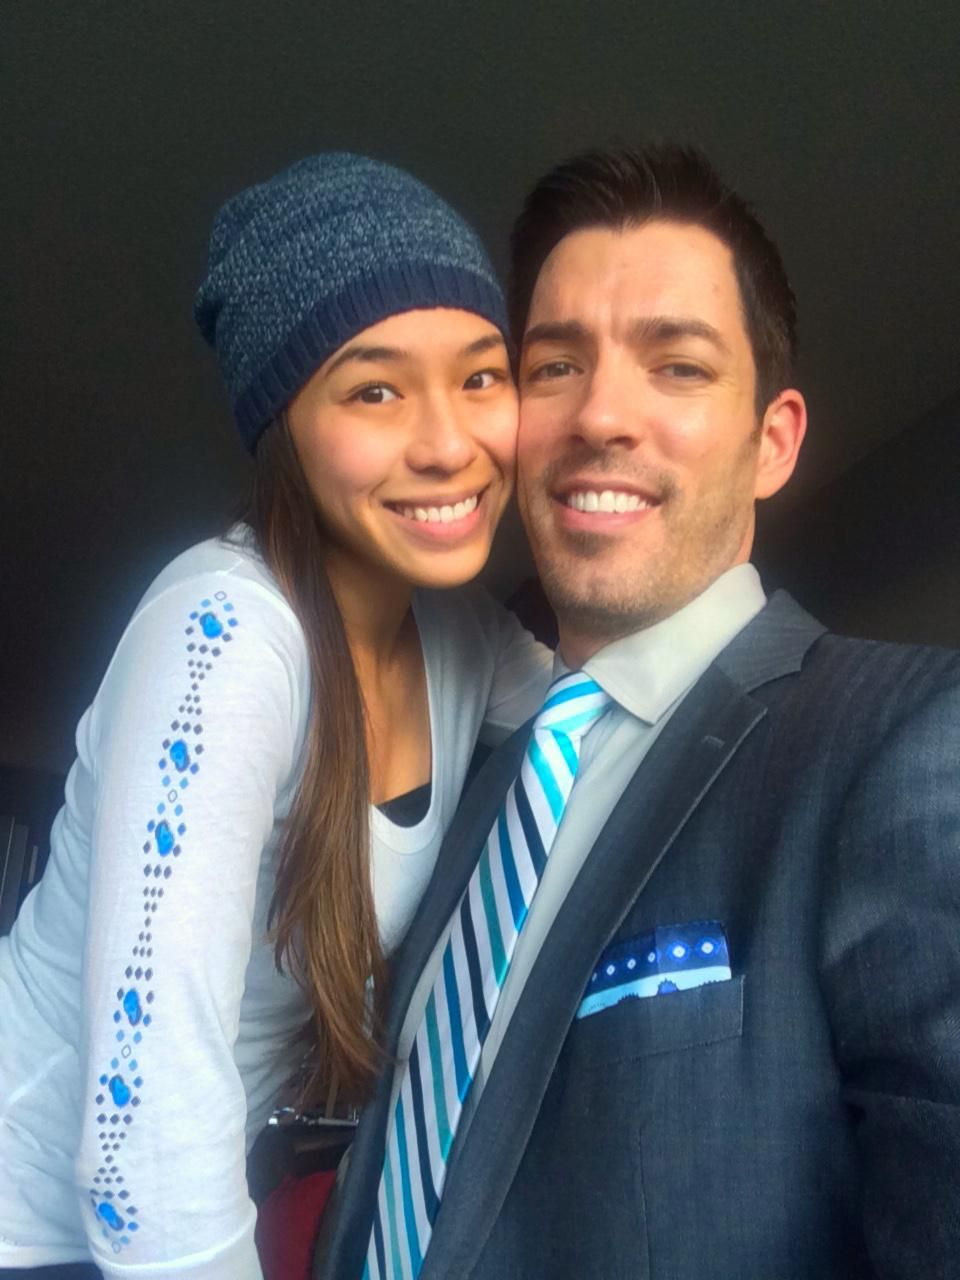 Drew scott married images galleries for How tall are the property brothers